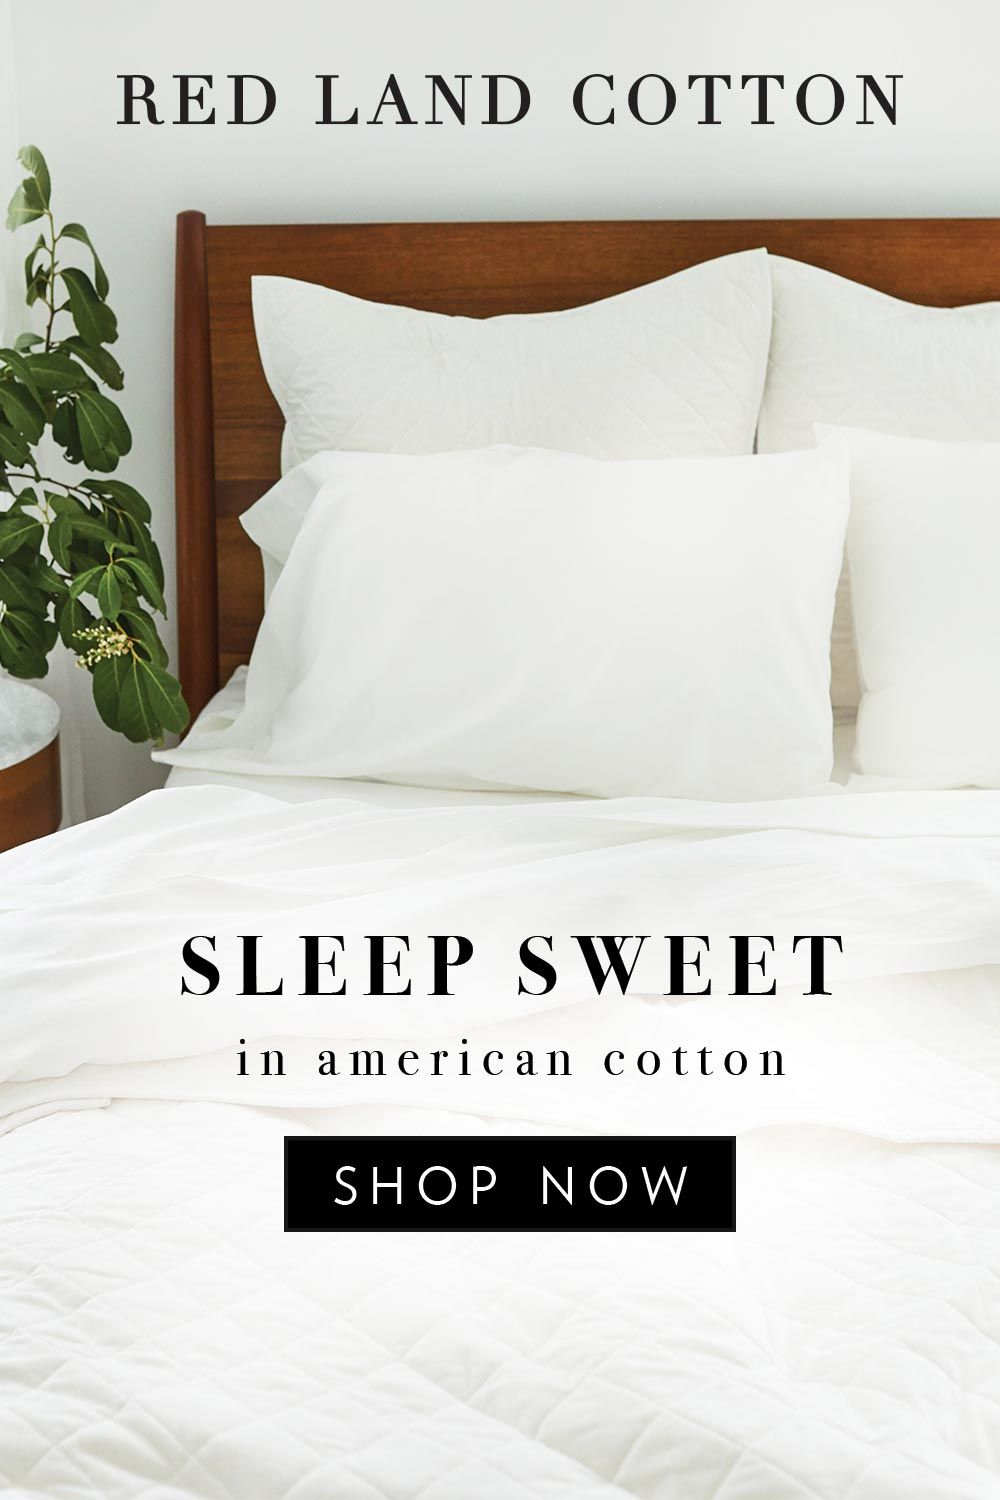 Pin By Rhonda Staggs On Cleaning Organizing Red Land Cotton How To Make Bed Cotton Bedding American made bed sheets